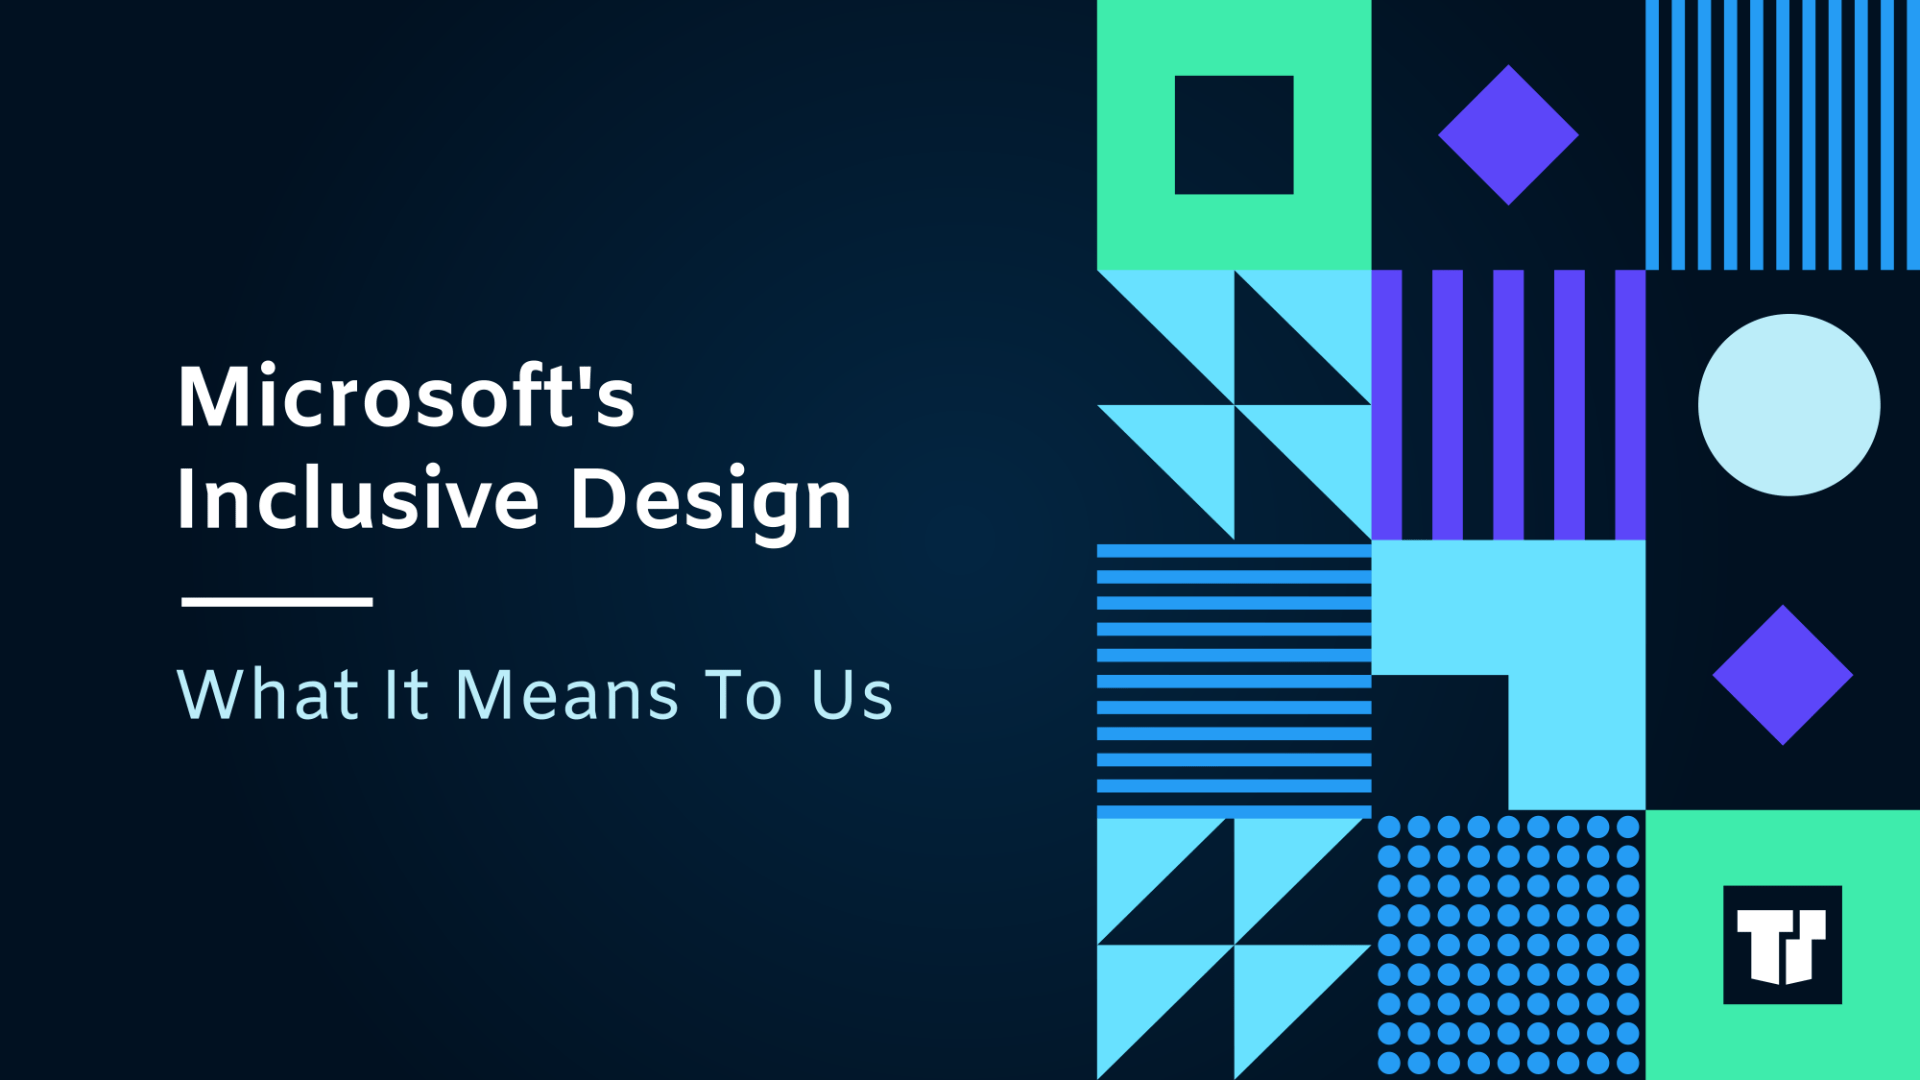 Microsoft's Inclusive Design Approach and What it Means to Us cover image